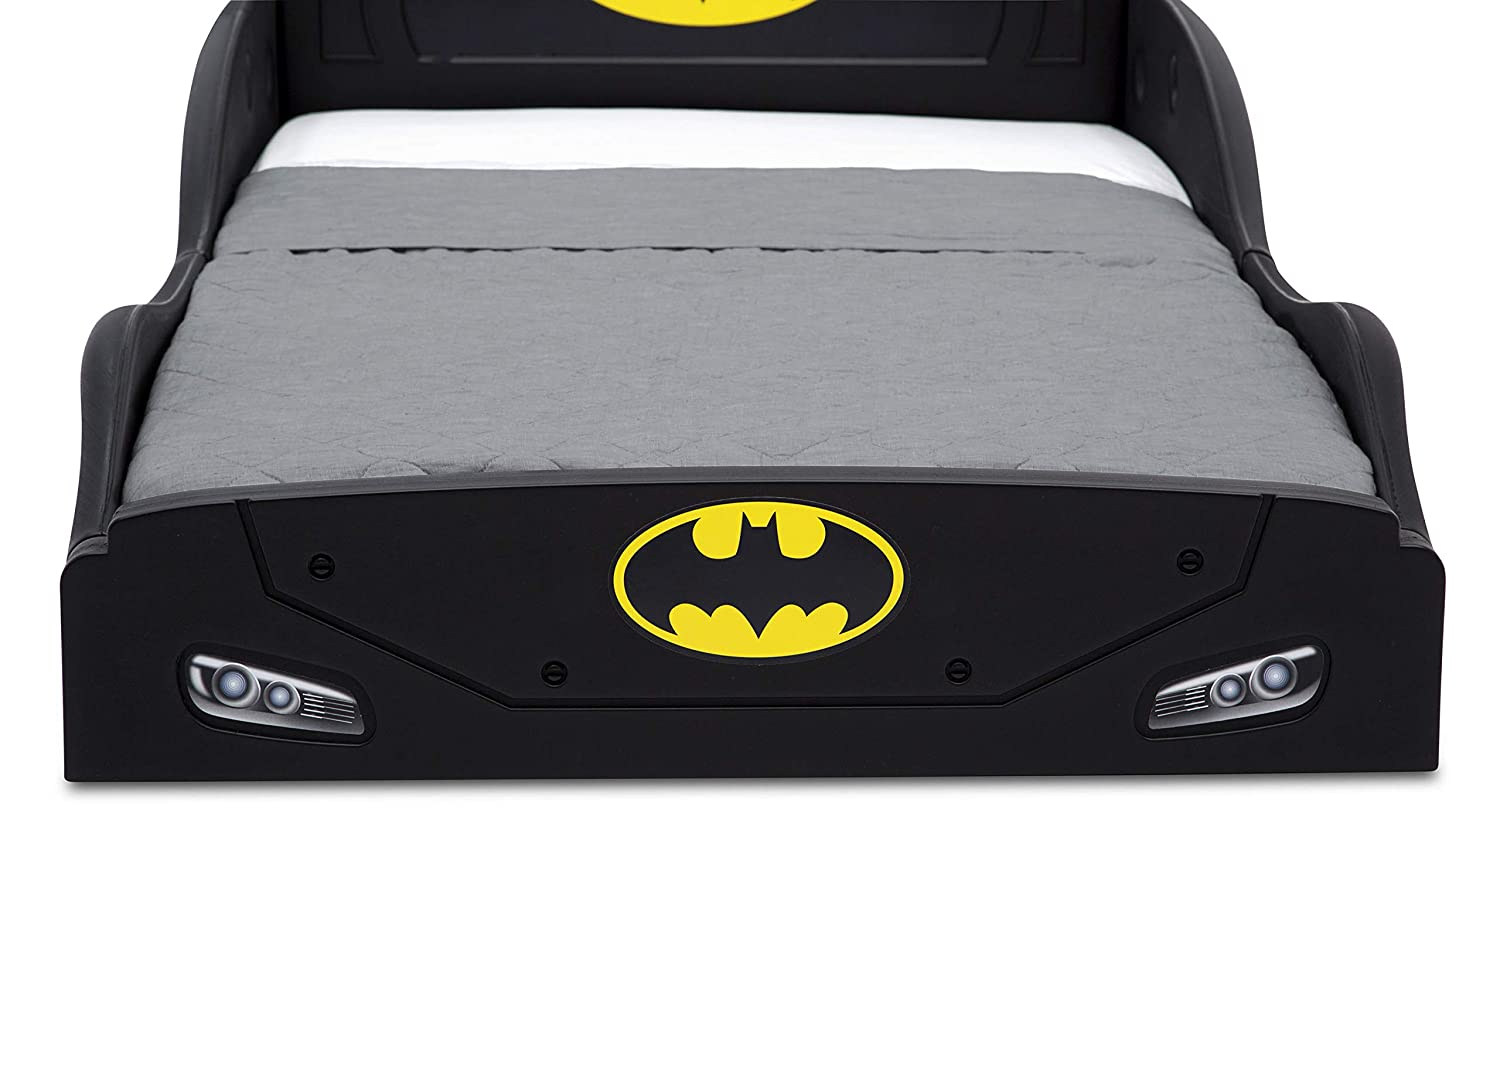 DC Comics Batman Batmobile Car Sleep and Play Toddler Bed with Attached Guardrails by Delta Children